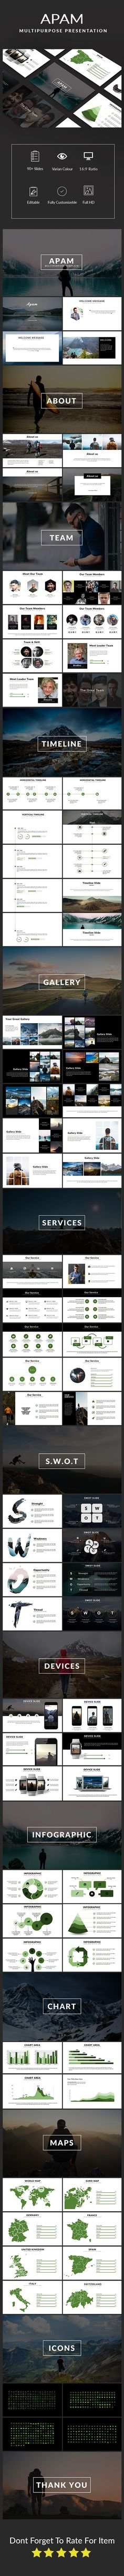 Apam Multipurpose Template by jason_born MAIN FILE: Note : All Image Is Not Include Easy to change colors, Fully editable text, photos, Shape & other elements Unique Custo Presentation Design Template, Presentation Layout, Presentation Slides, Business Presentation, Powerpoint Tutorial, Powerpoint Template Free, Keynote Template, Infographic, Clean Design